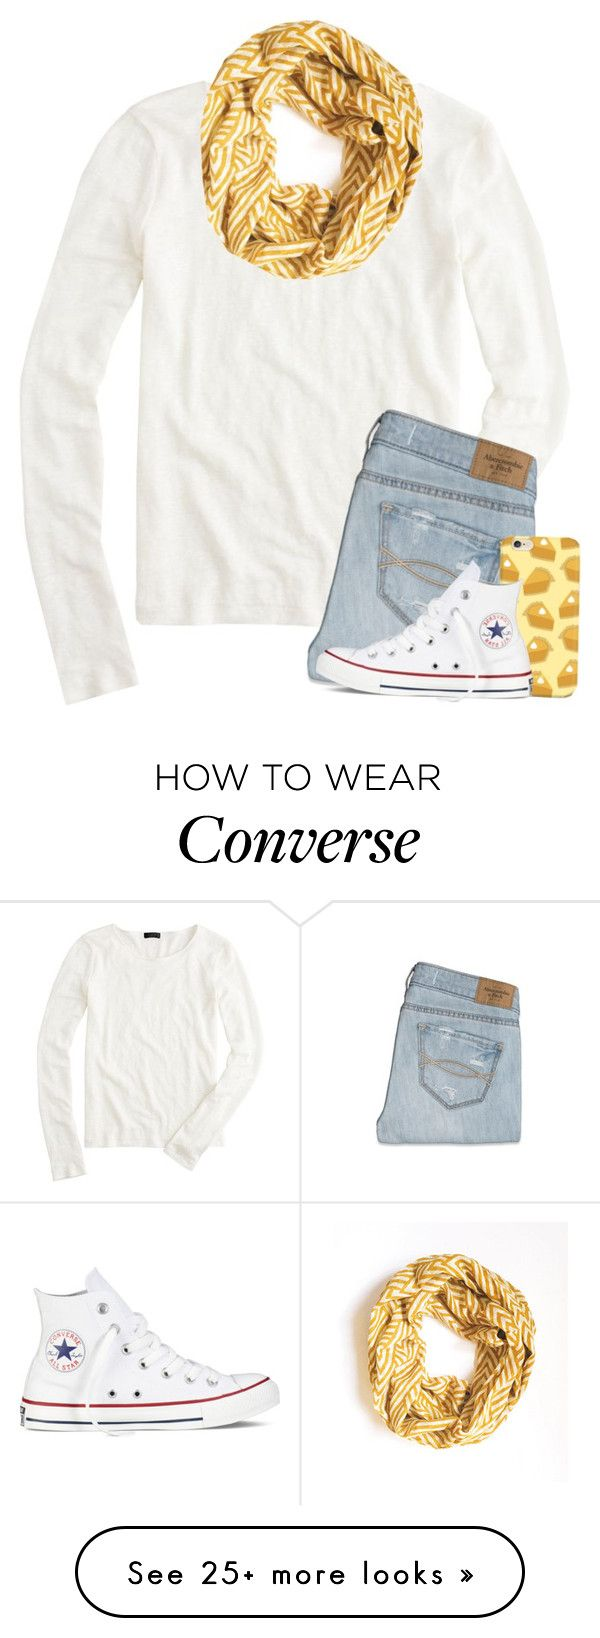 """{Insert pie emoji here}"" by meljordrum on Polyvore featuring J.Crew, Maelu, Abercrombie & Fitch and Converse"